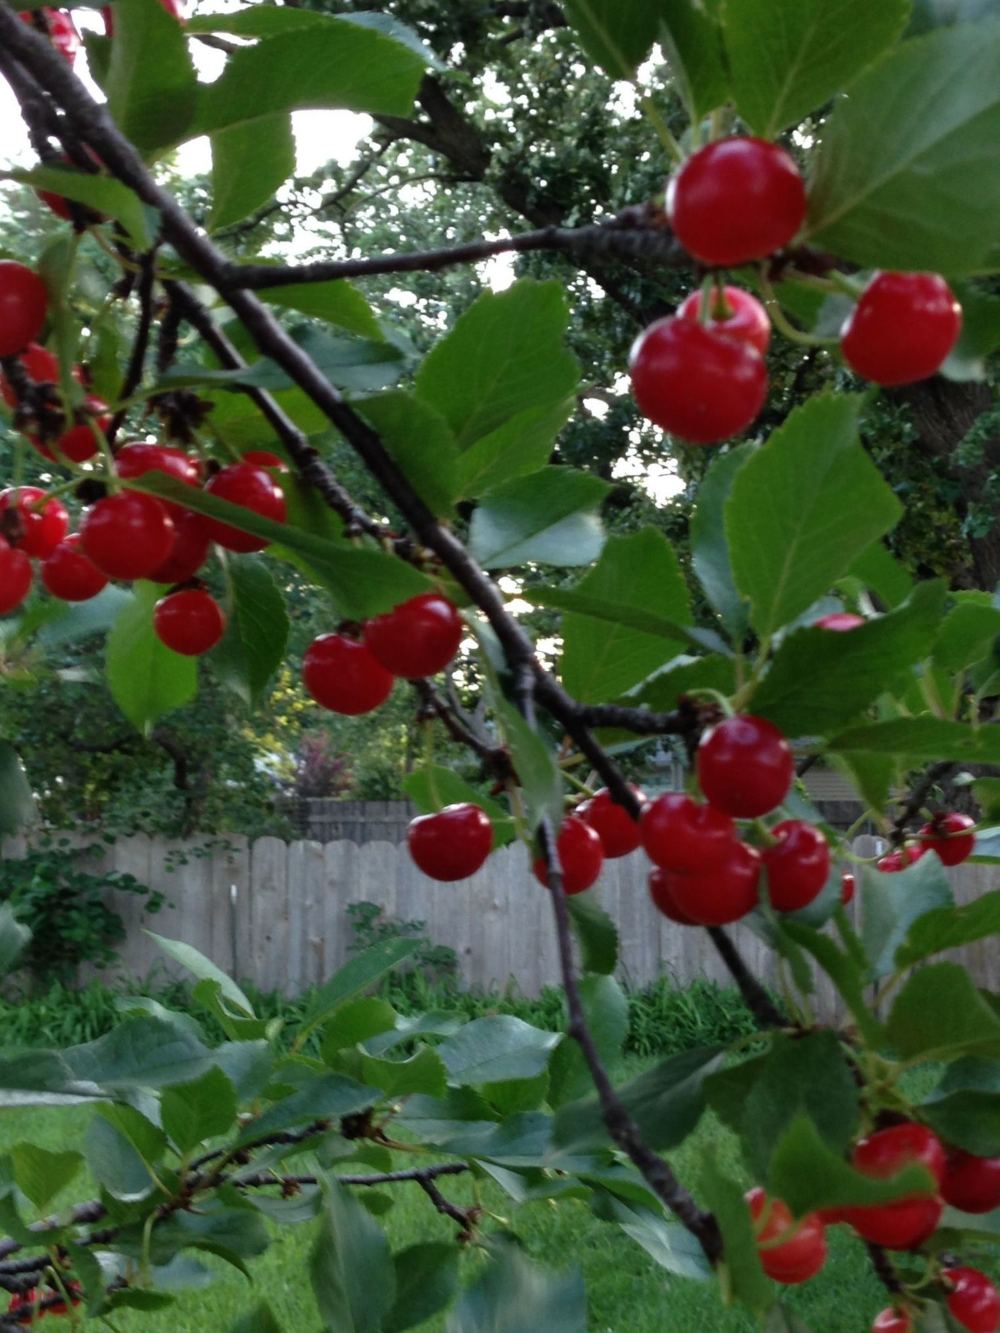 Cherries... ready for pickin'!